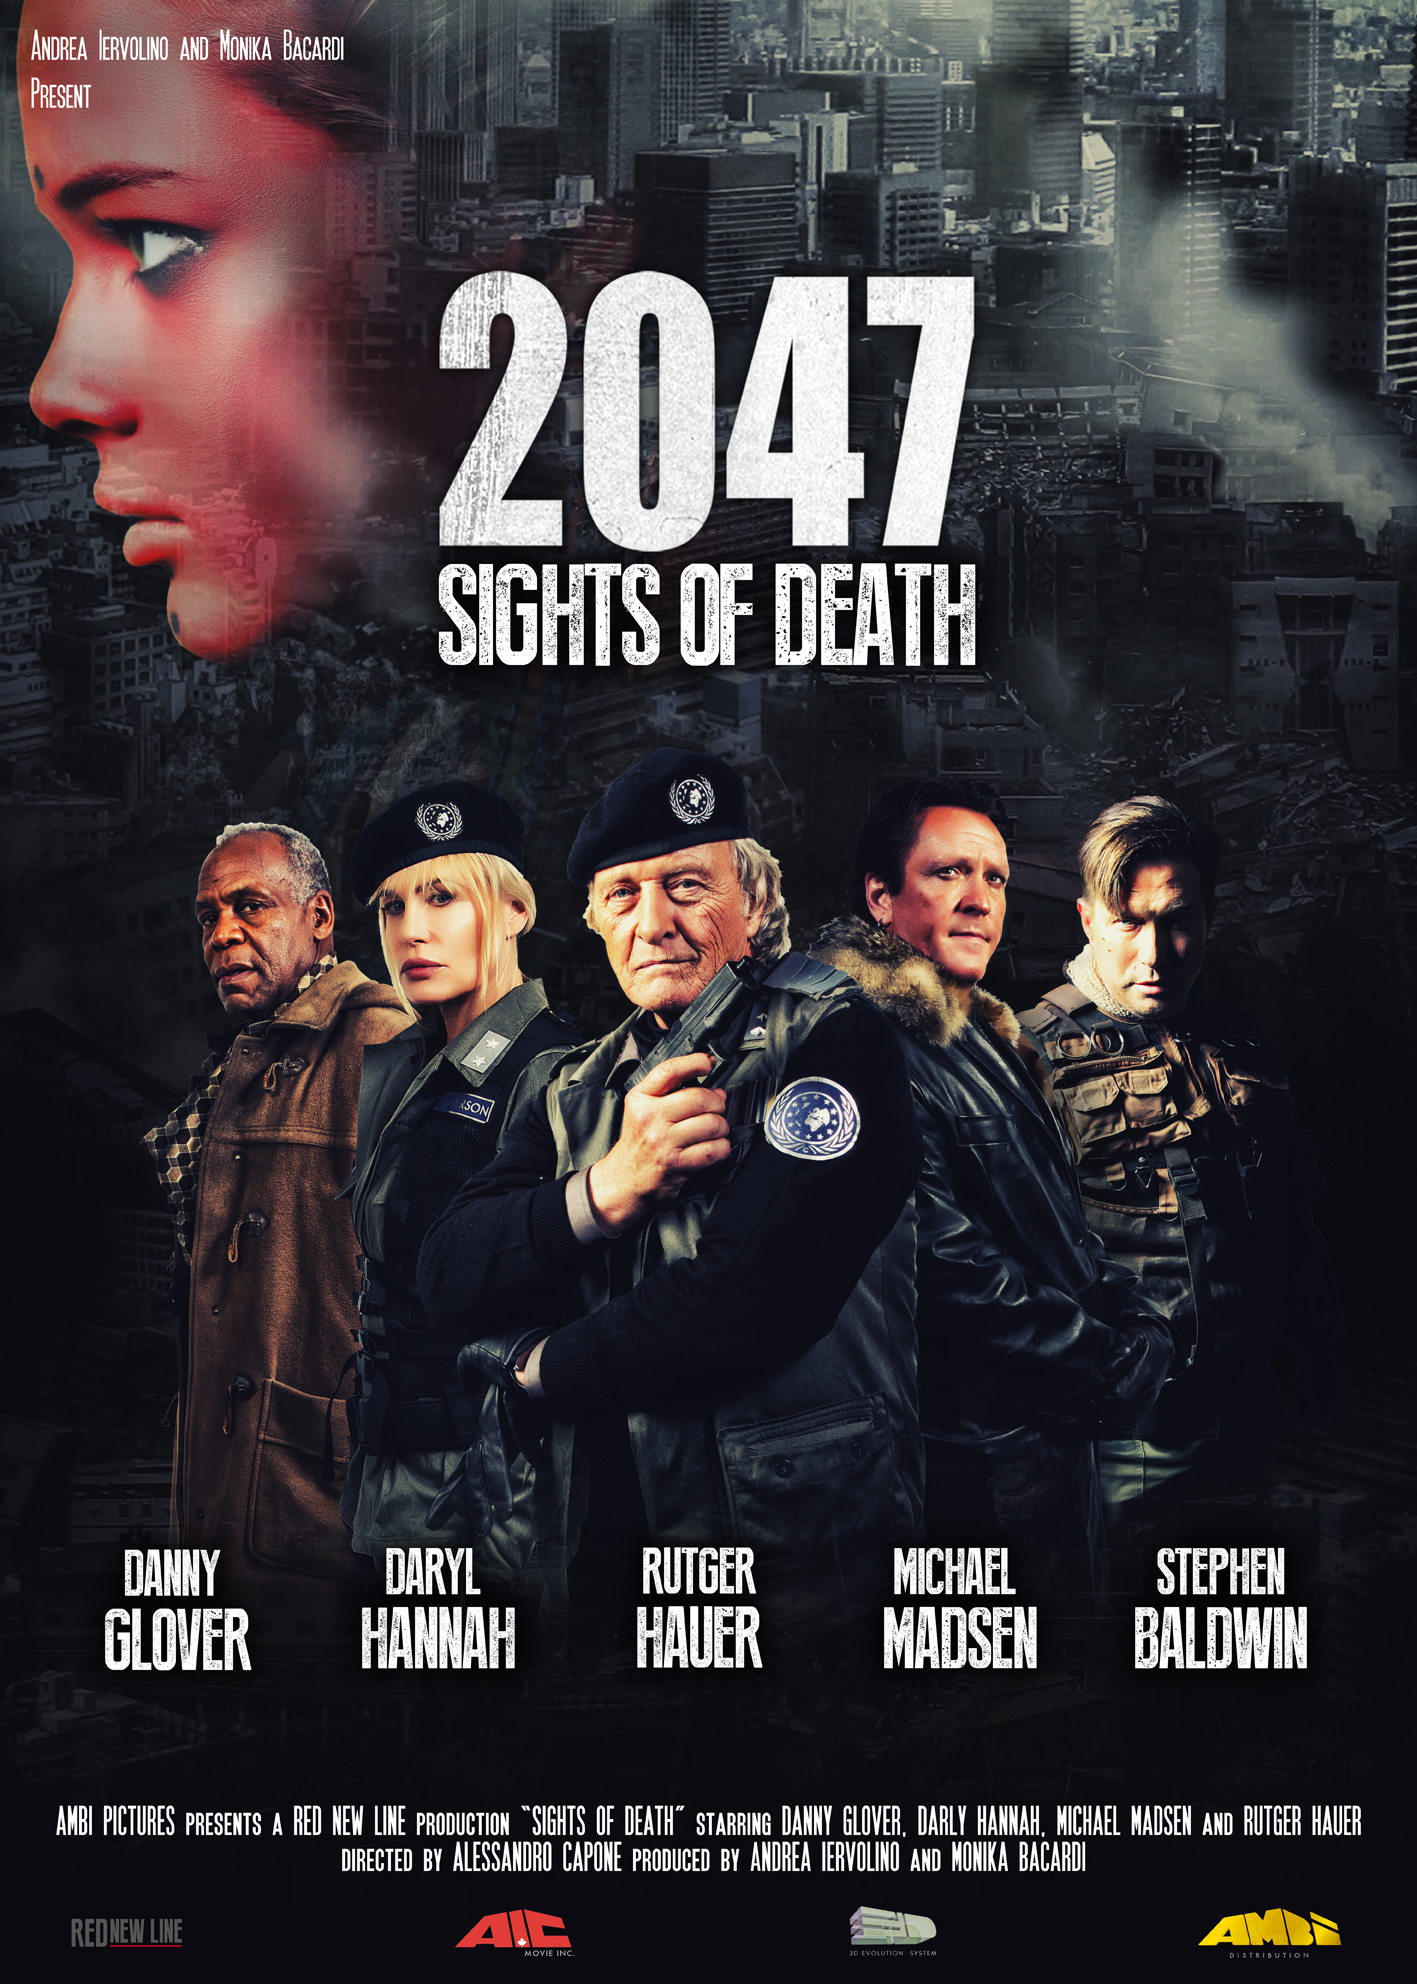 2047 - Sights of Death: il poster ufficiale